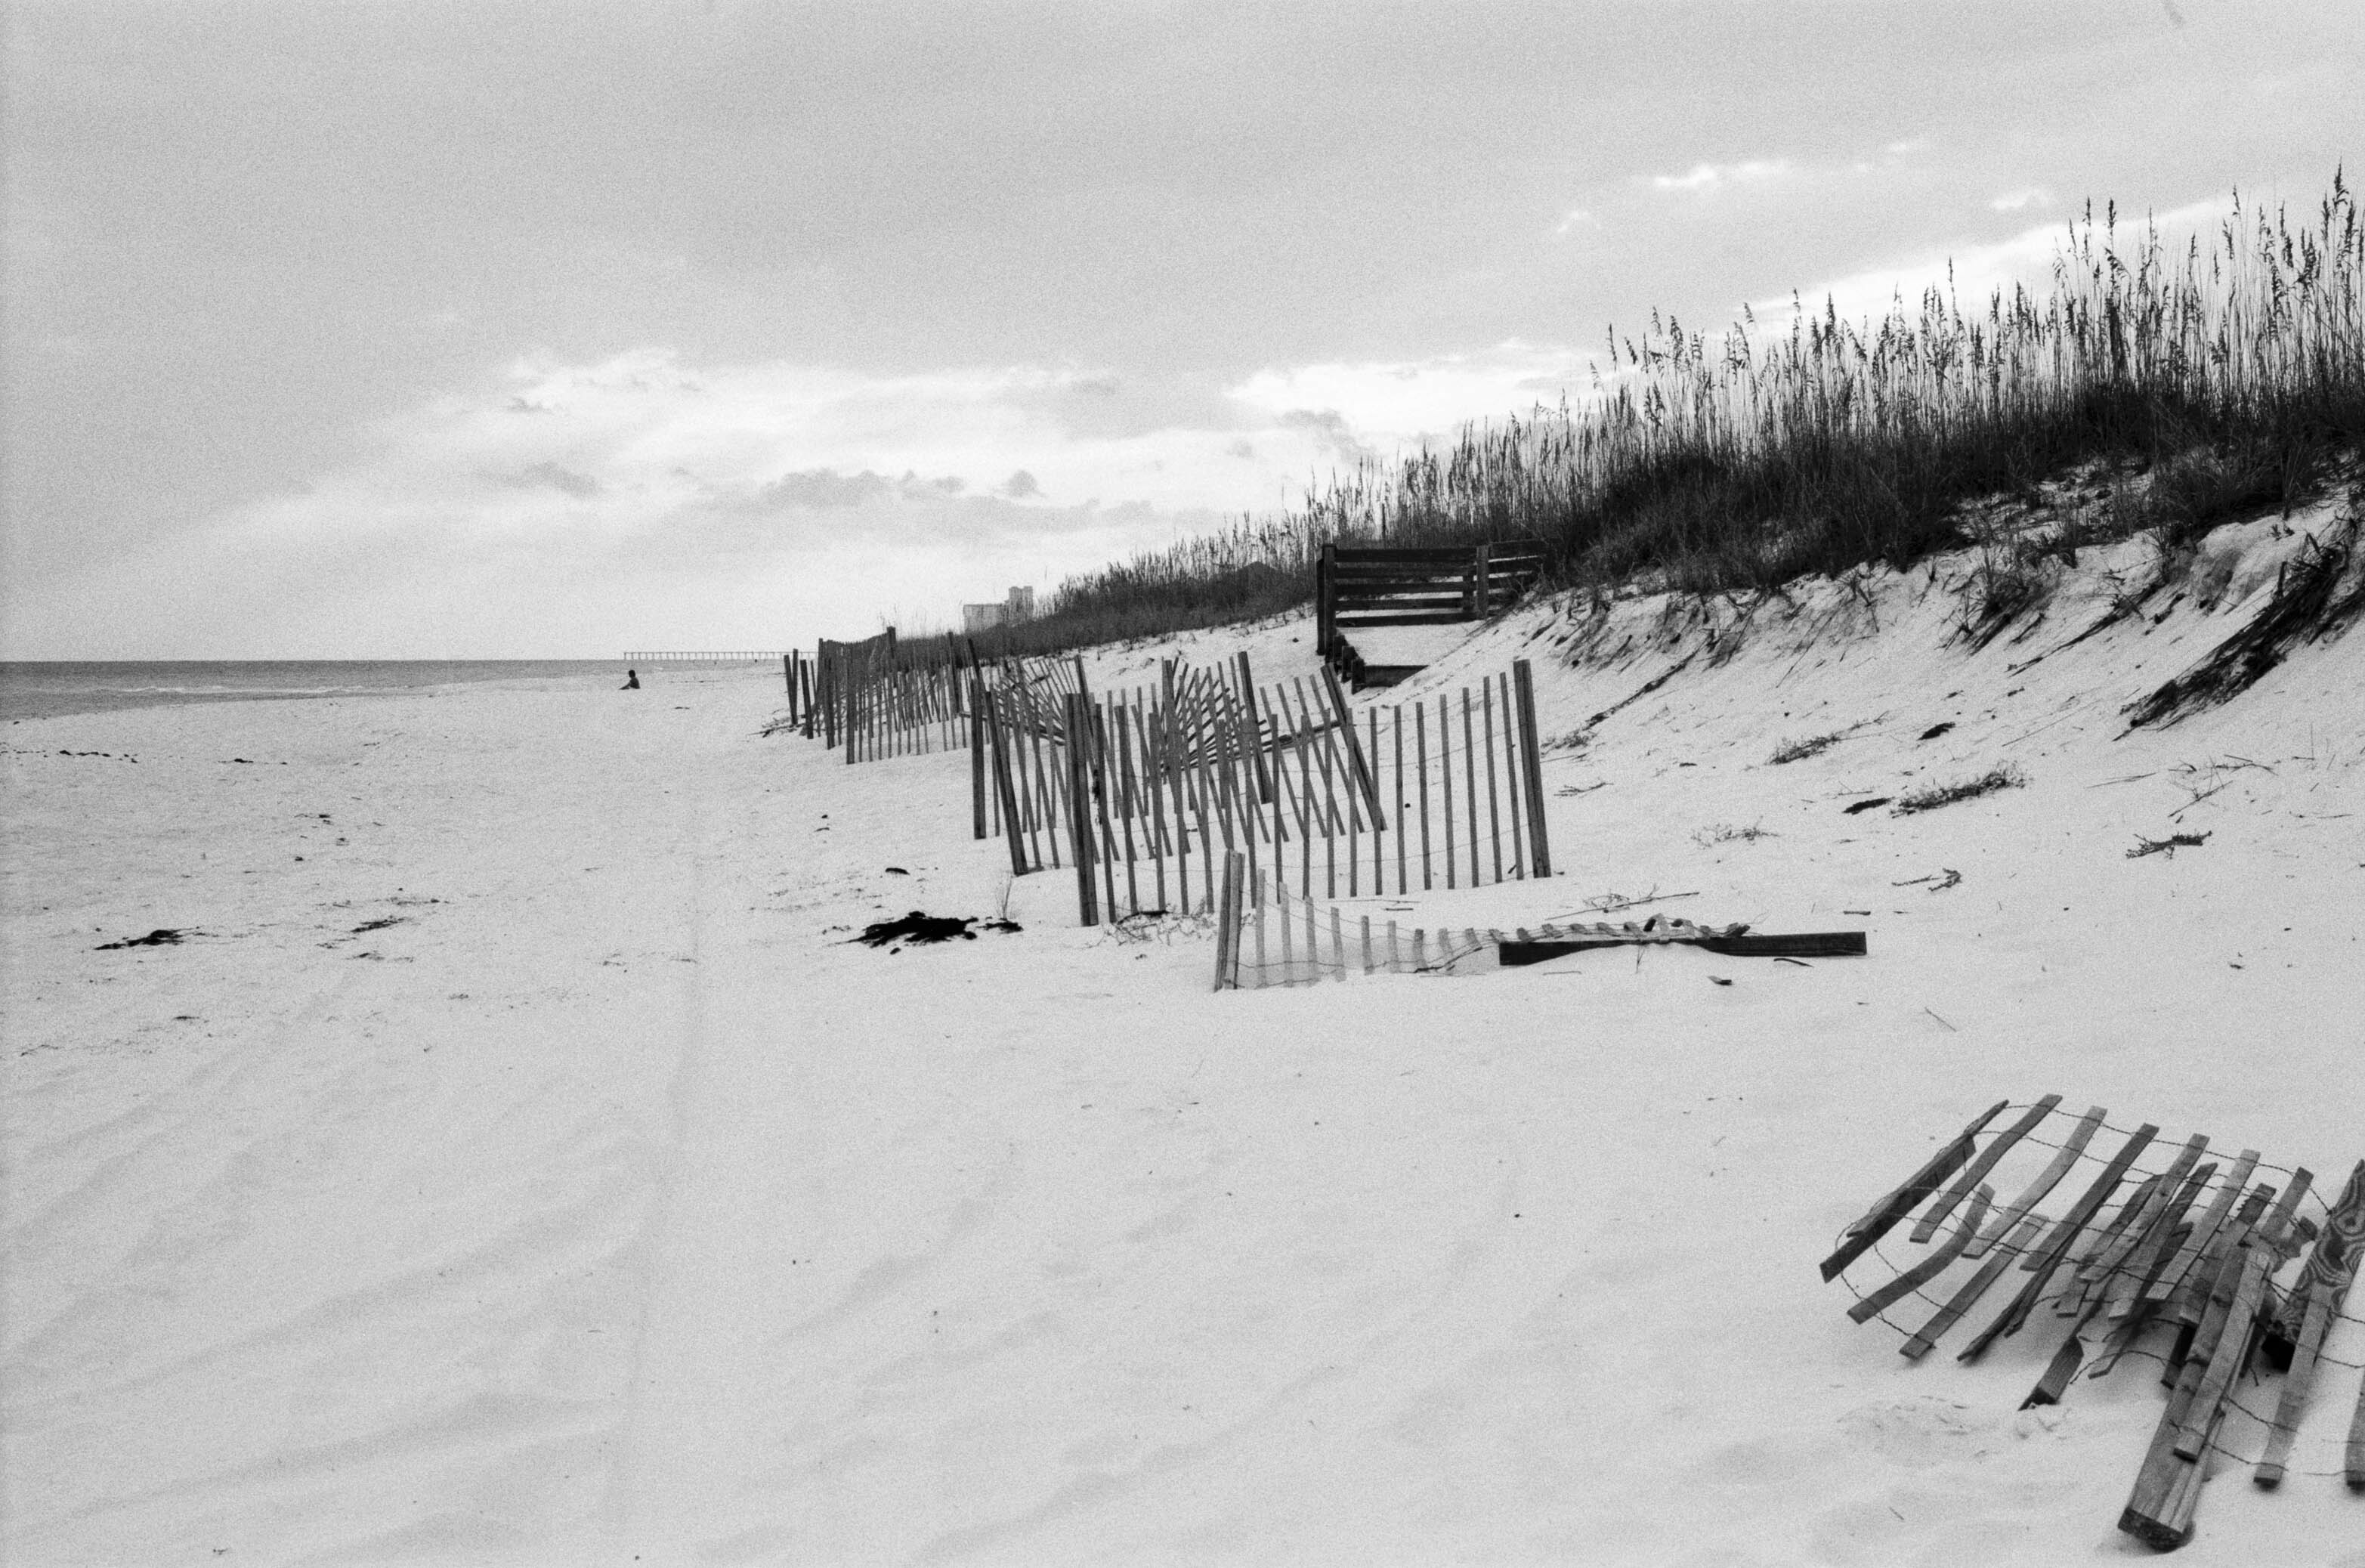 Vacation 2014: Black and White Beach